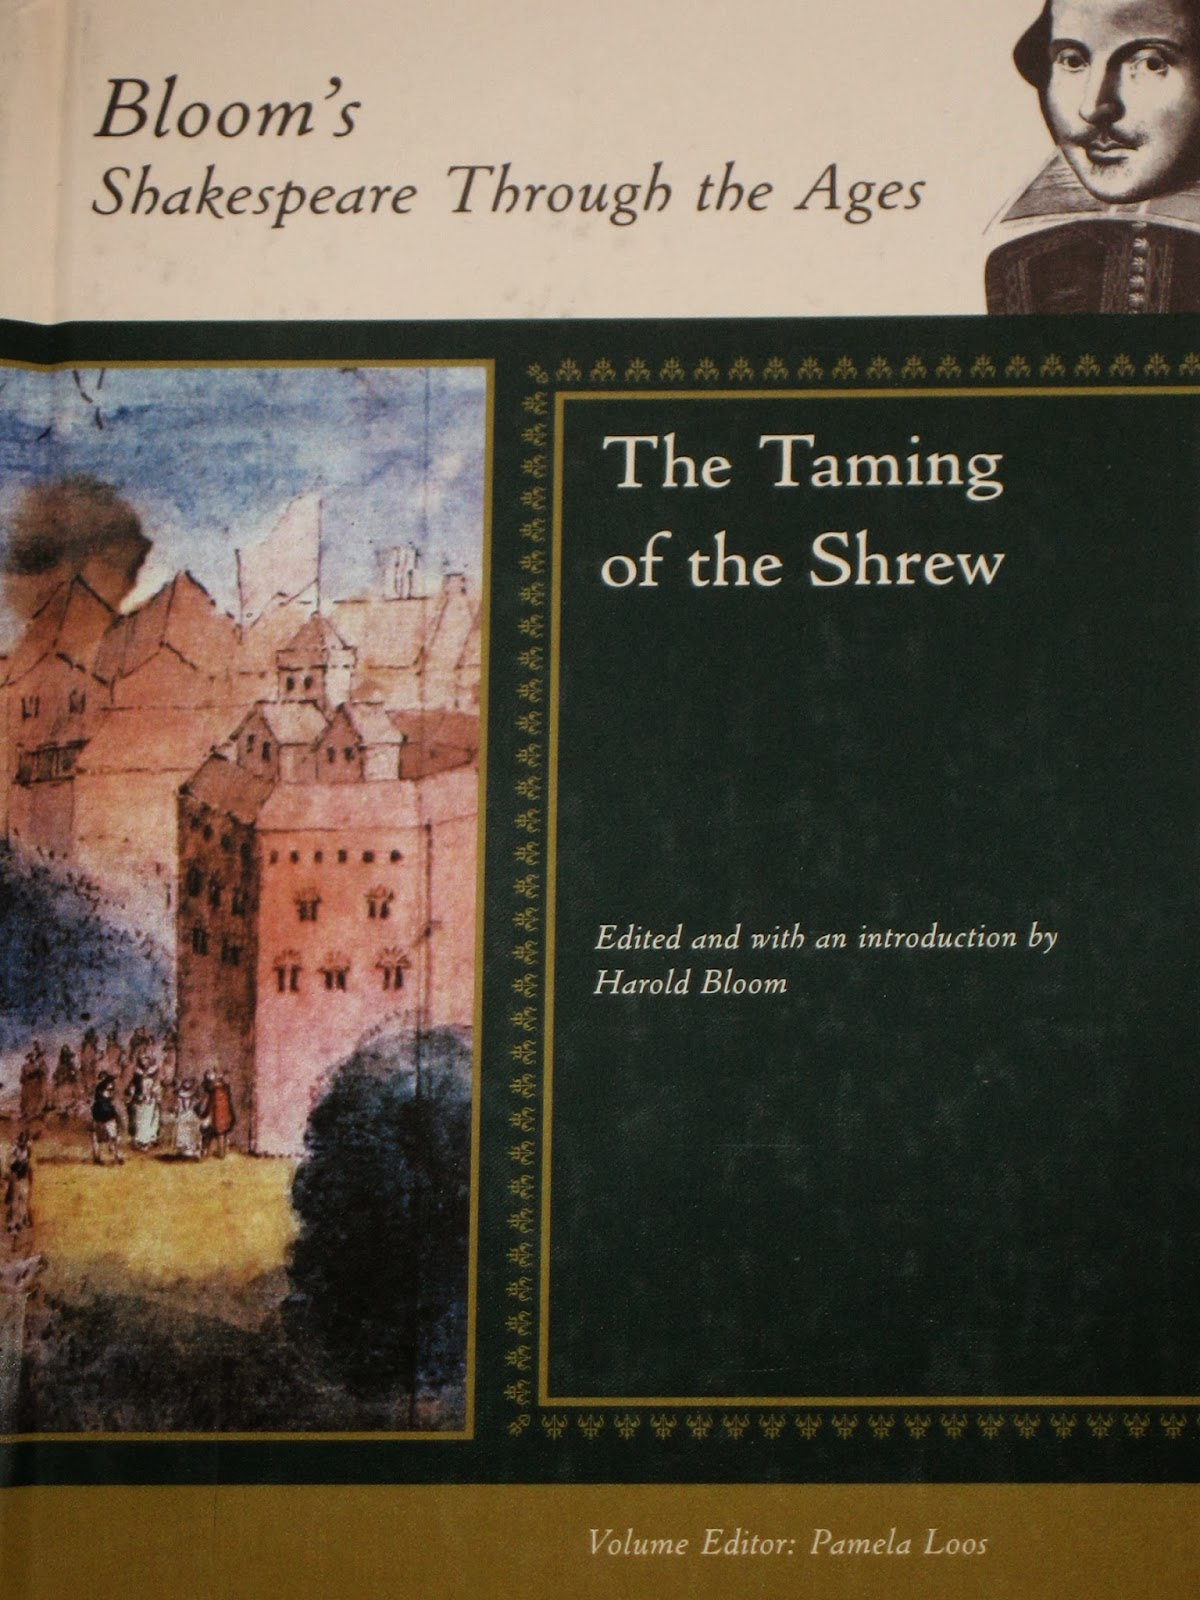 the taming of the shrew 3 essay Discussion: the play the taming of the shrew deals with more than one shrew similar documents to taming of the shrew essay 3 pages taming of the.